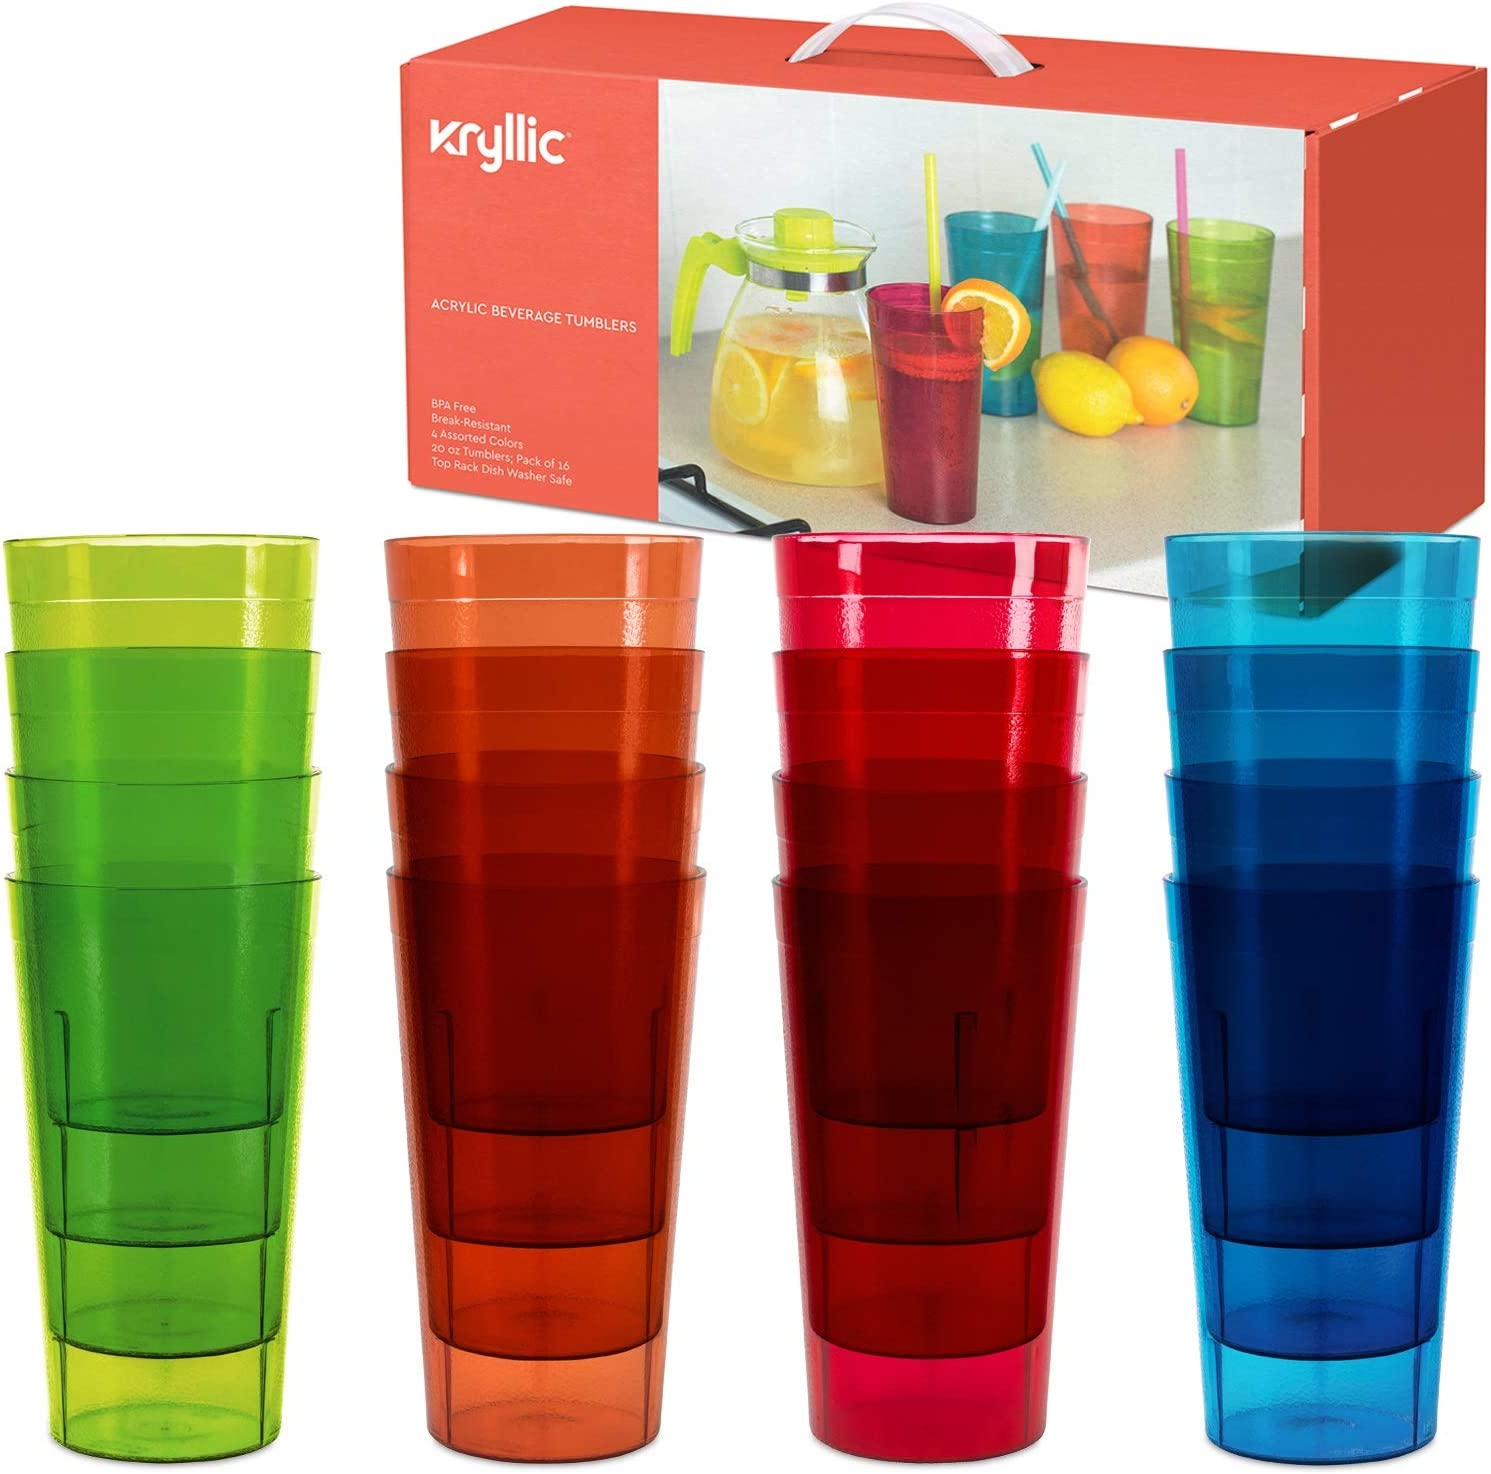 Kryllic Drinking Glasses Plastic Tumblers Drinkware Kids Cups Acrylic Tumbler Set Of 16 Break Resistant 20 Oz In 4 Assorted Colors Restaurant Quality Tumbers Dishwasher Safe And Bpa Free